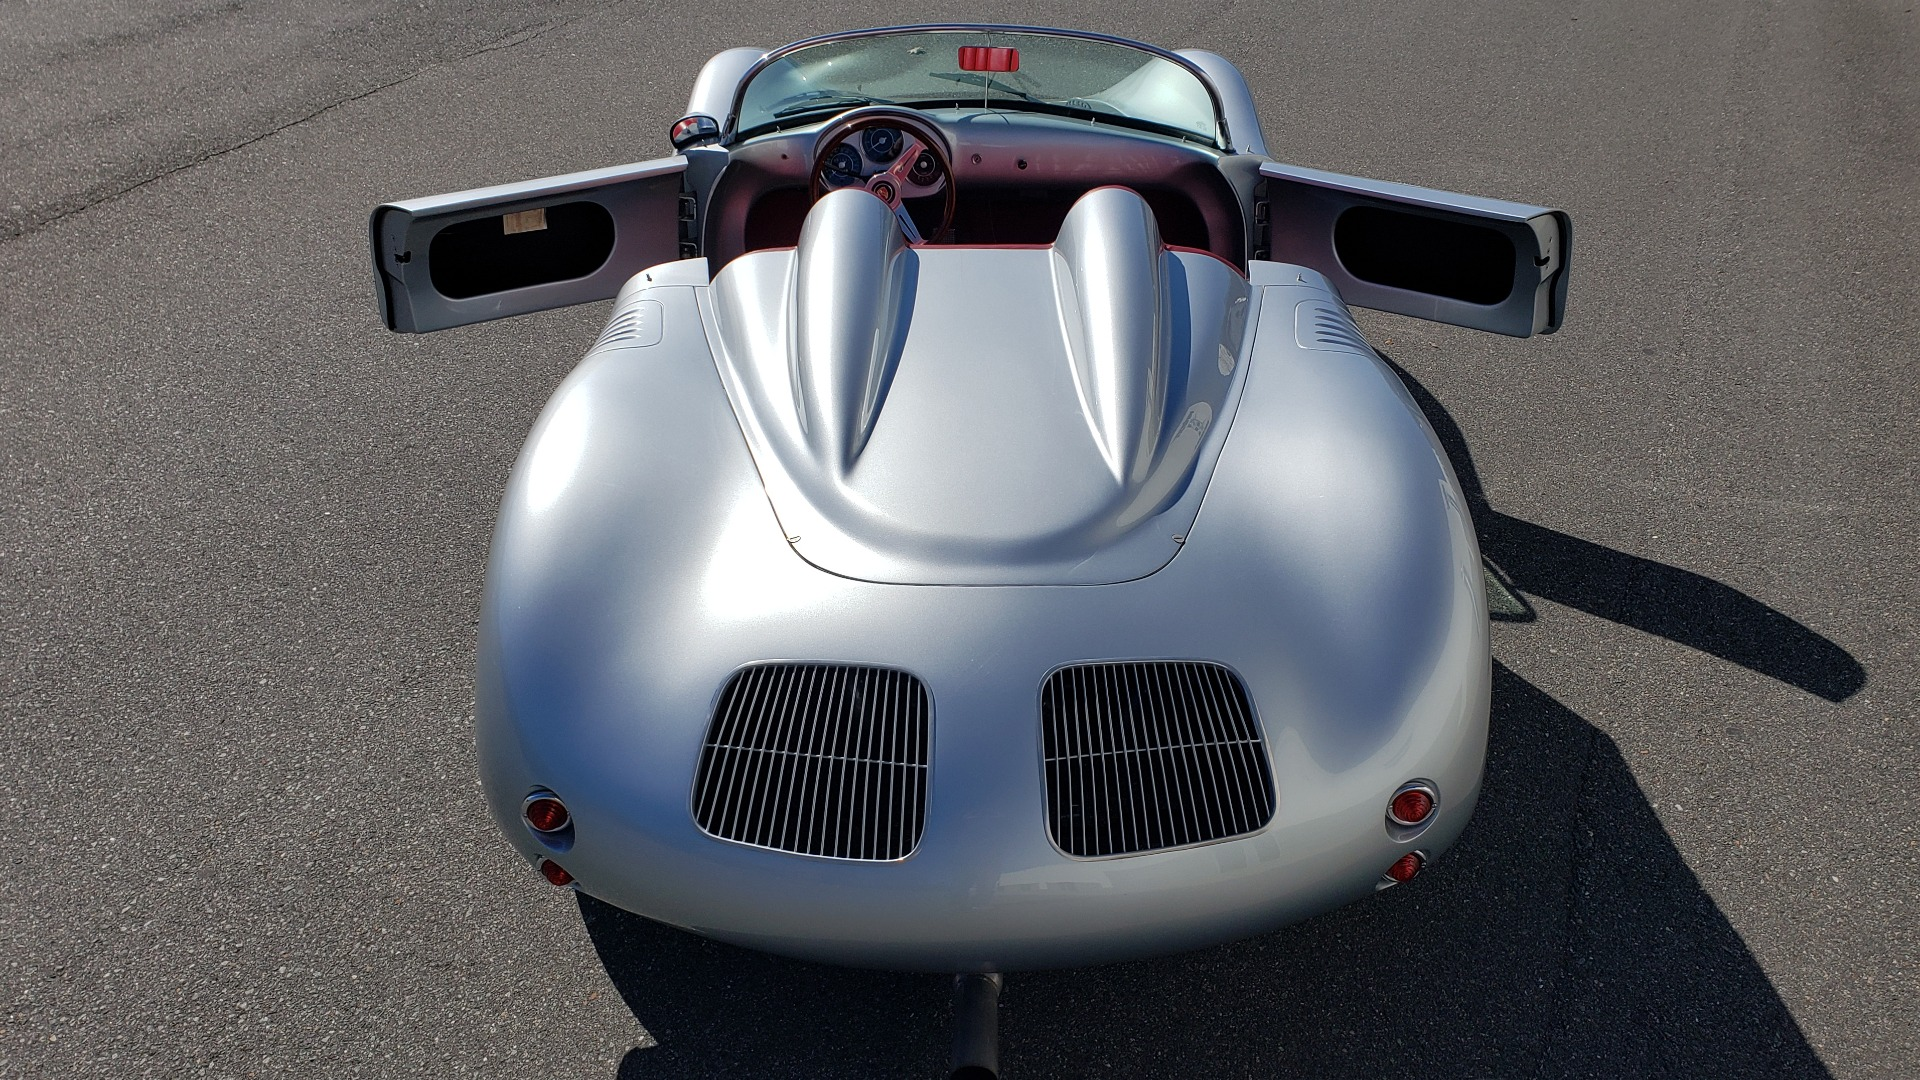 Used 1960 Porsche 718 RSK SPYDER REPLICA / 2275CC W/44MM WEBER (160HP) / 4-SPD MANUAL for sale $39,999 at Formula Imports in Charlotte NC 28227 37